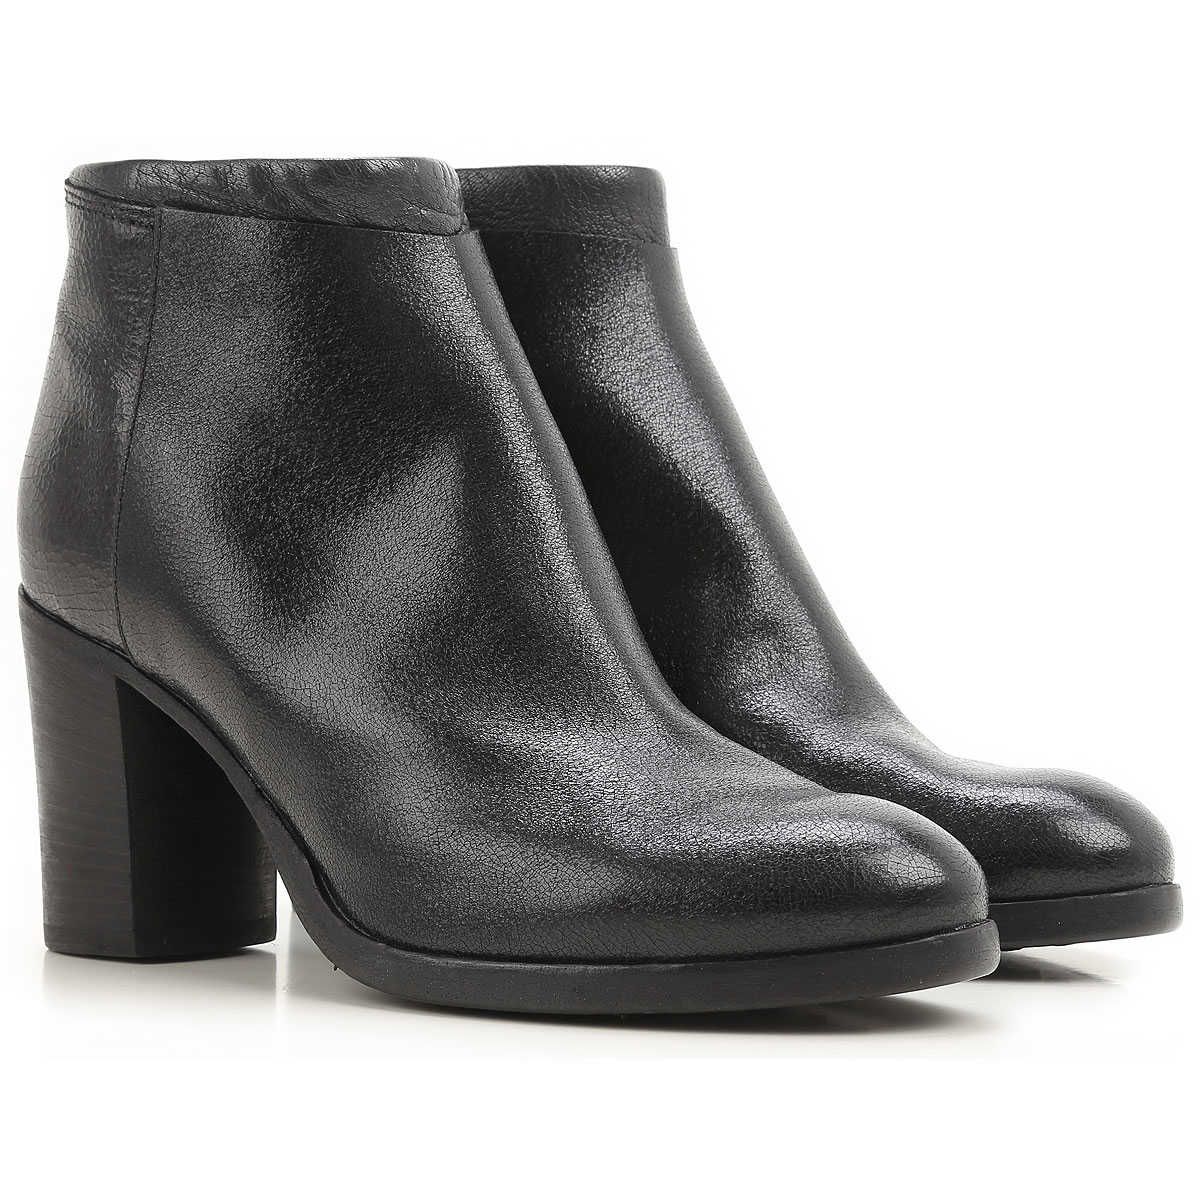 Moma Boots for Women